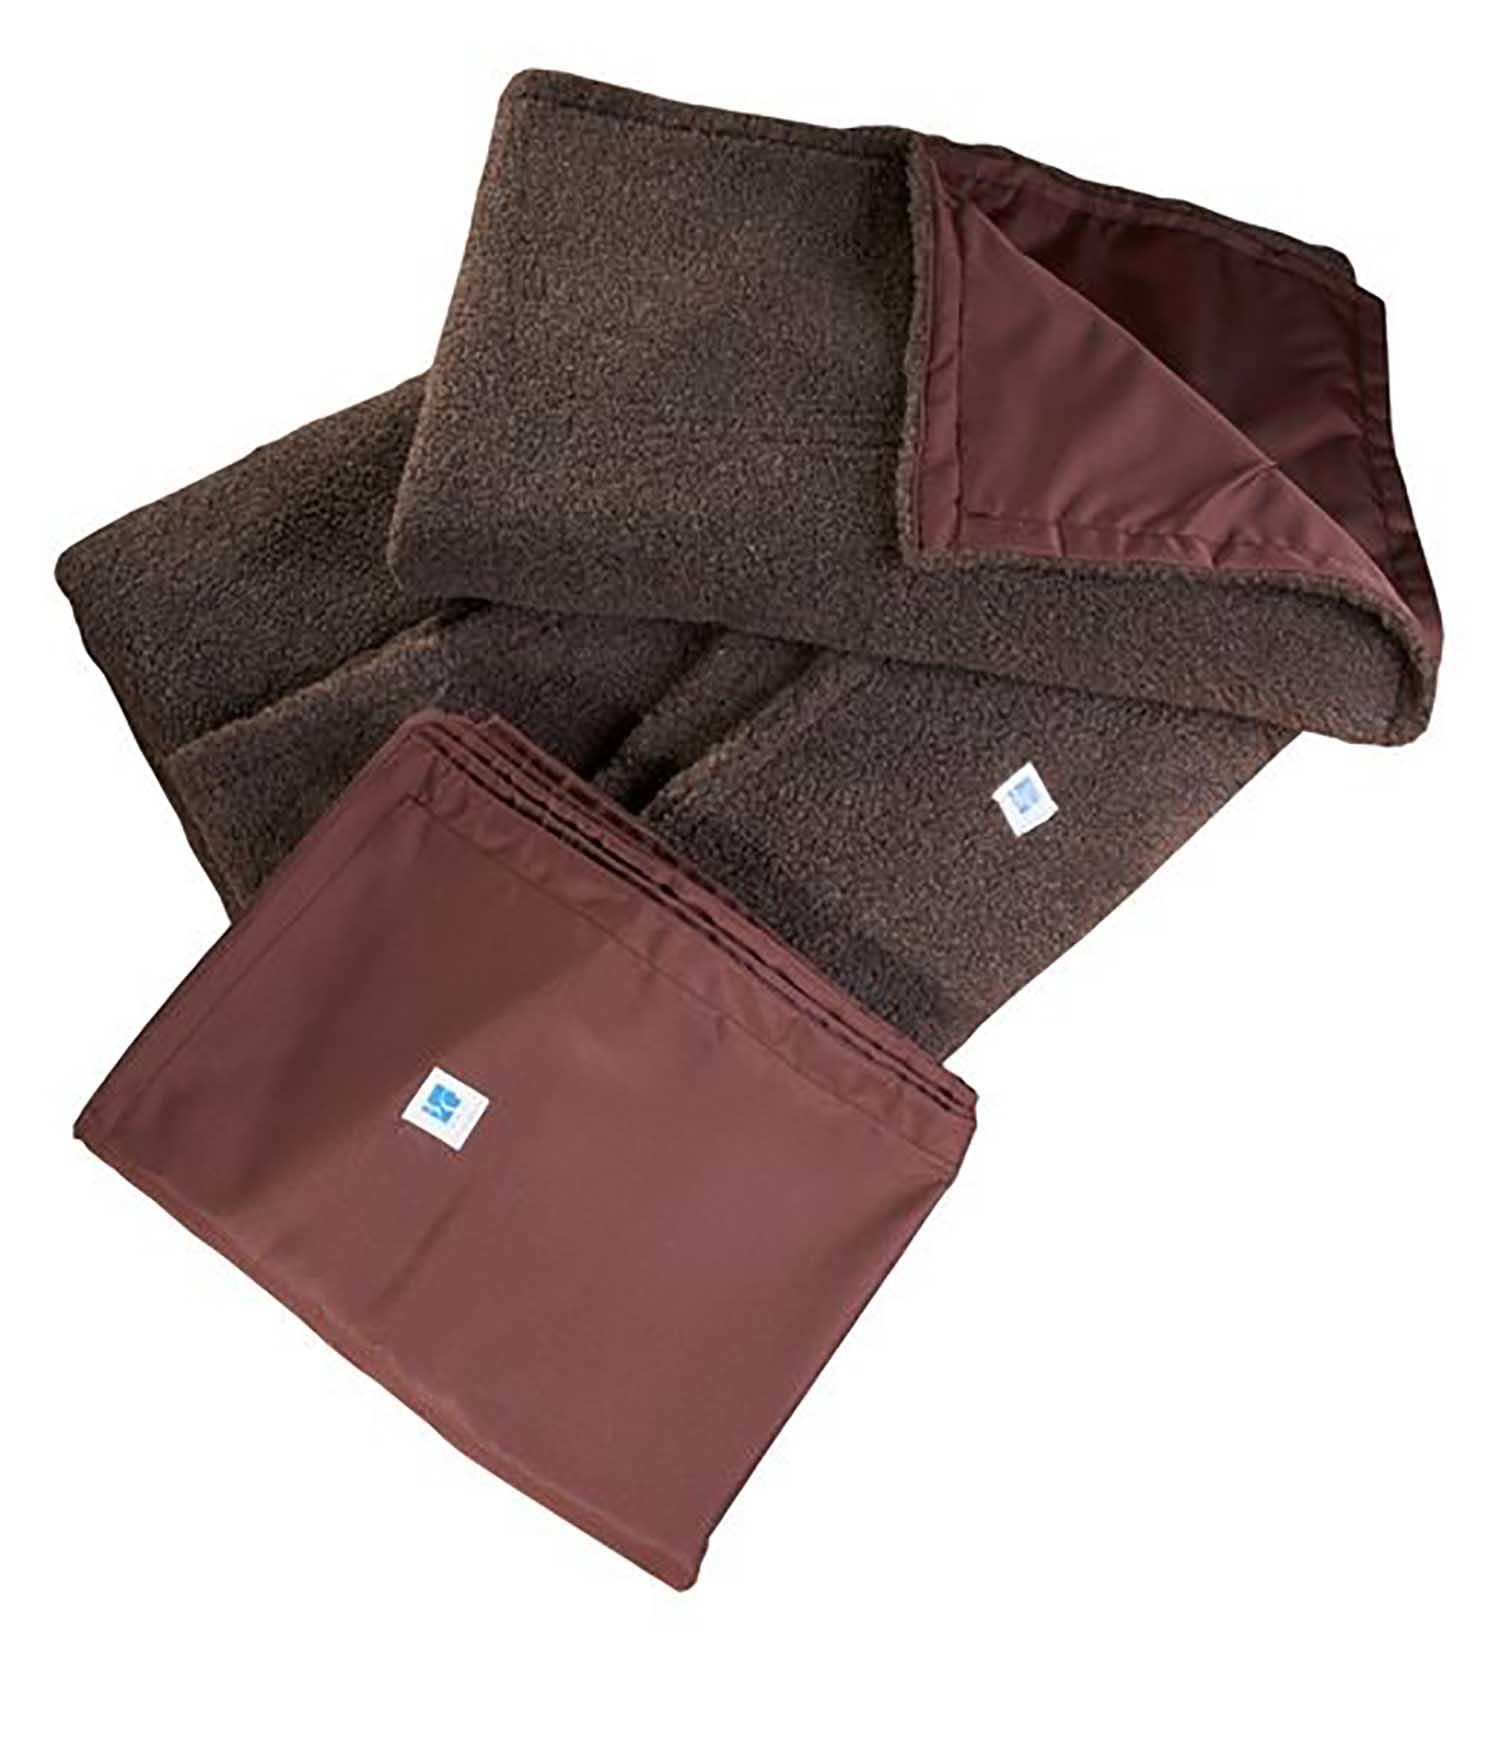 Brown Dog Cat blankets and throws Fleece Ideal for the sofa